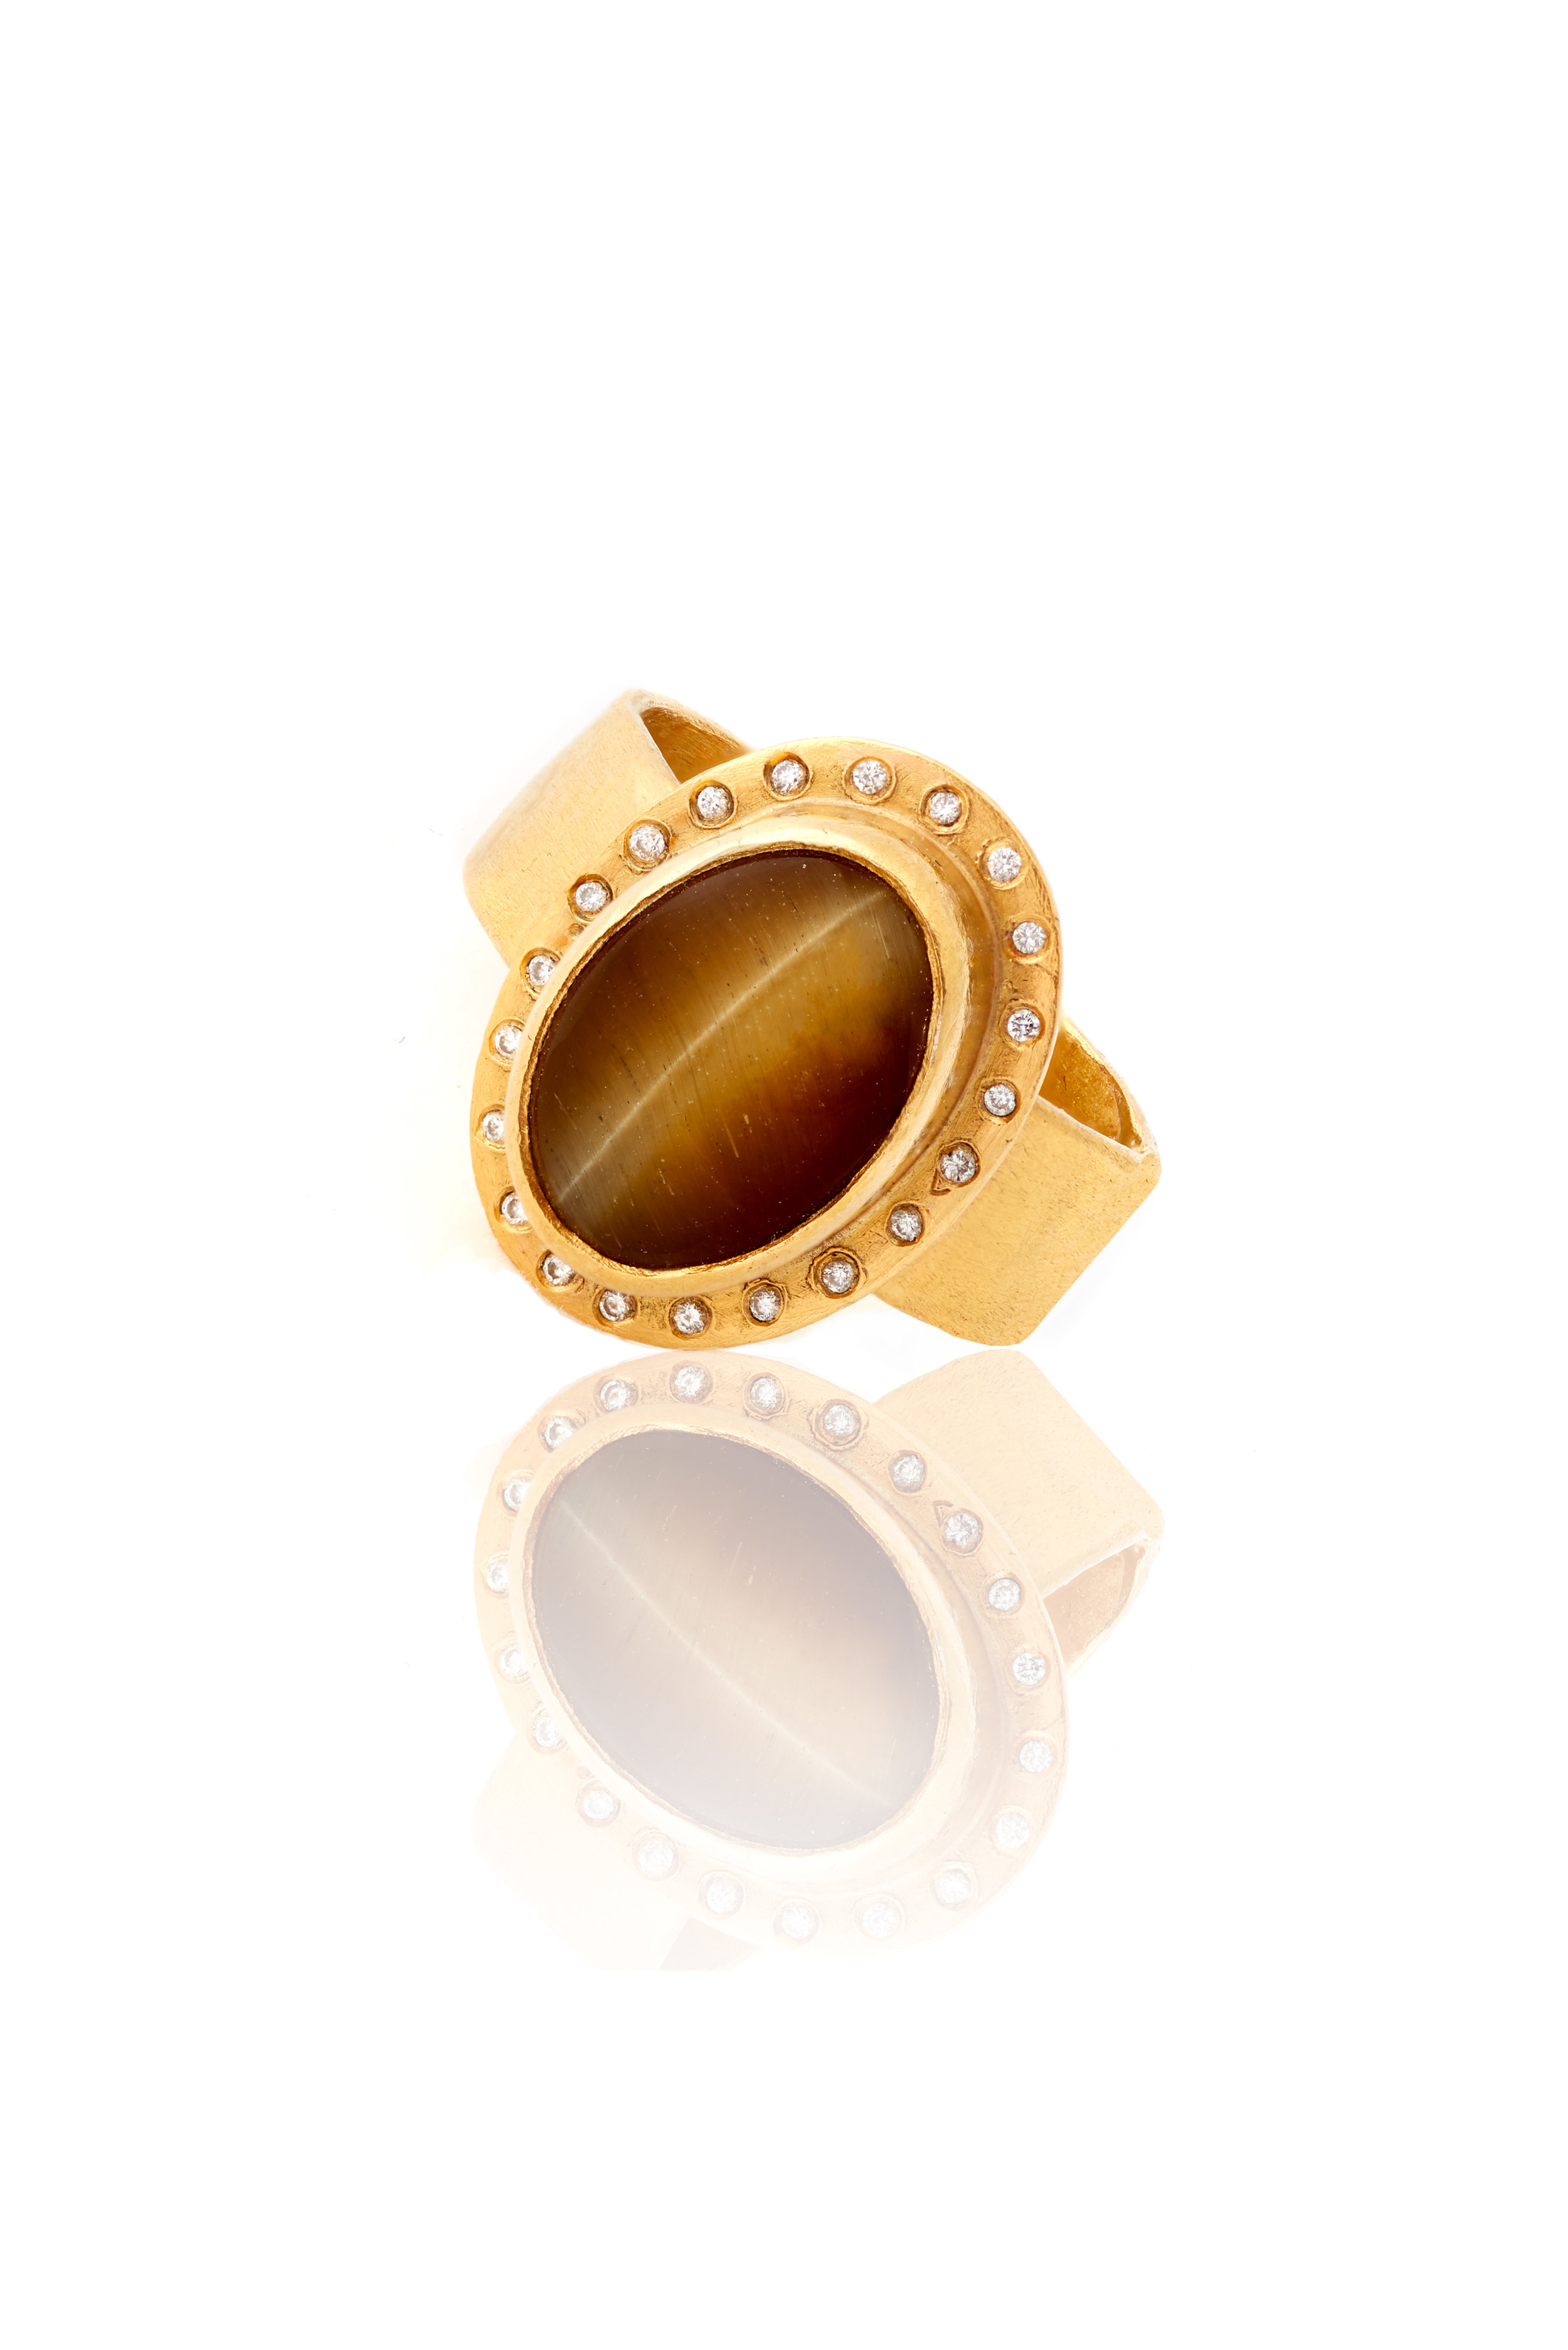 22K gold ring with tiger's eye and diamonds -